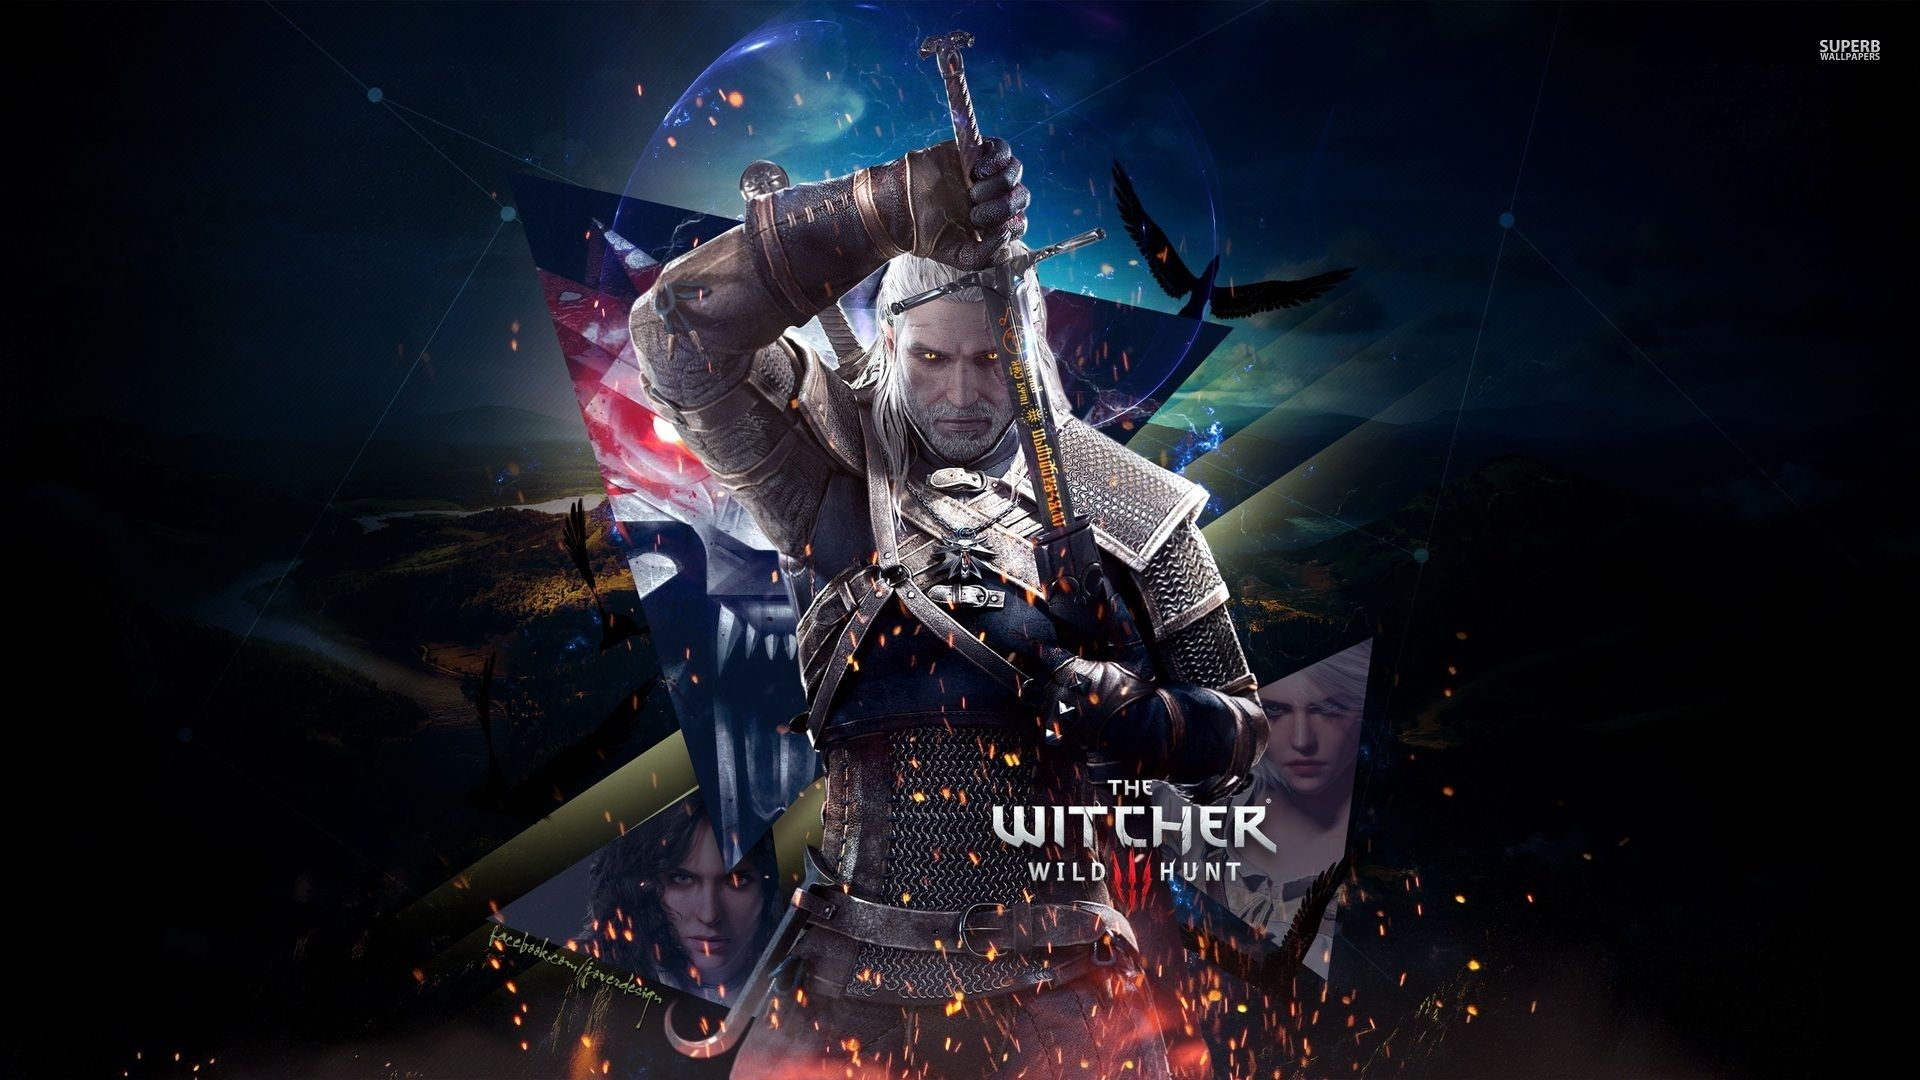 The Witcher 3 Wallpaper wallpaper. Wallpaper